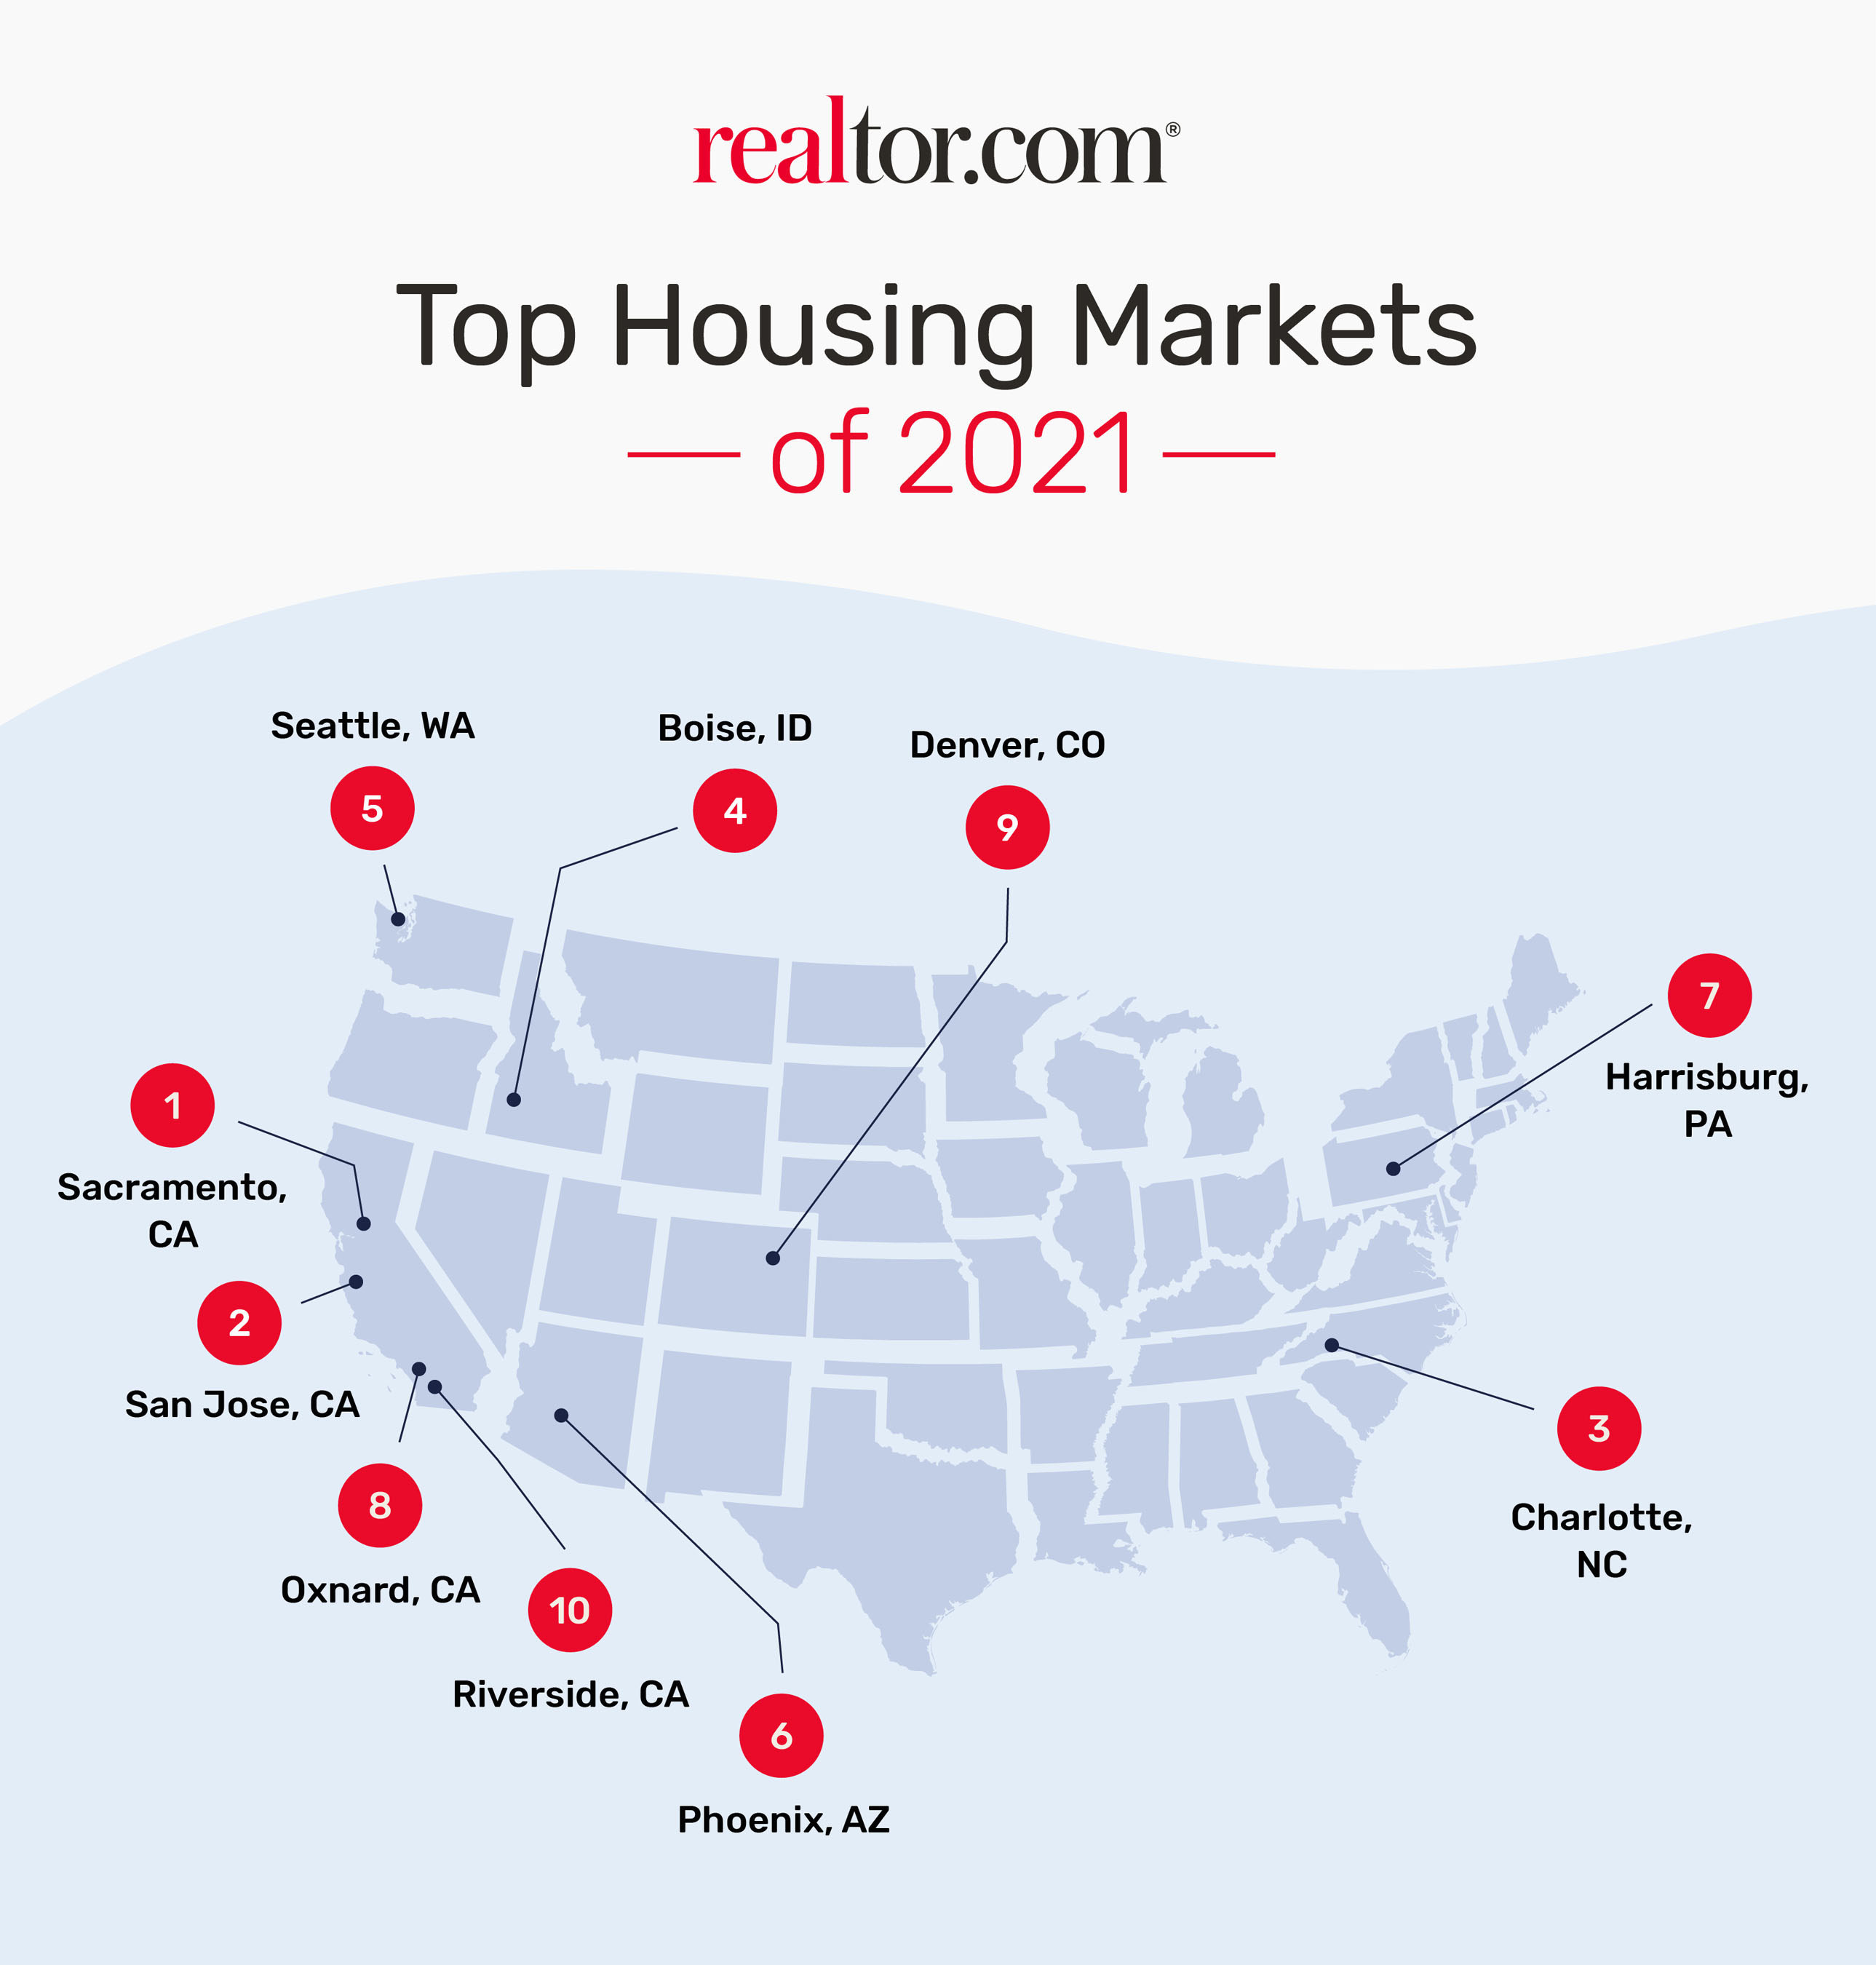 rdc Top Housing Markets 1